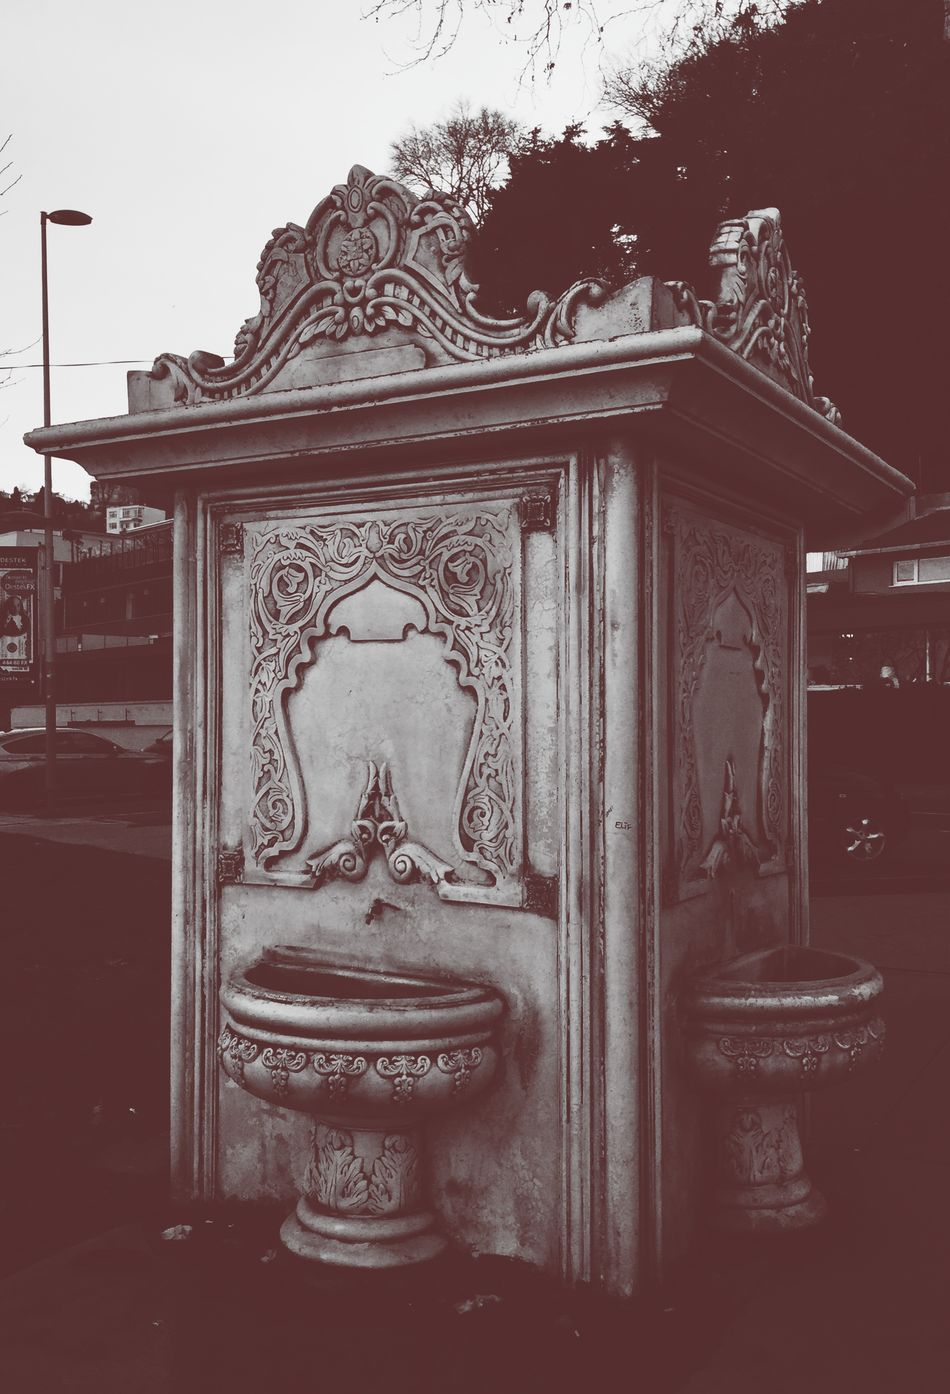 Ottoman architecture style water drinking fountain for people in Istanbul, Turkey Antient Architecture Beautiful Drink EyeEm EyeEm Best Shots EyeEm Gallery History Istanbul Ornaments Osman Ottoman Architecture Ottoman Empire Ottoman Style Outdoors Sultan Turkey Water Fountain